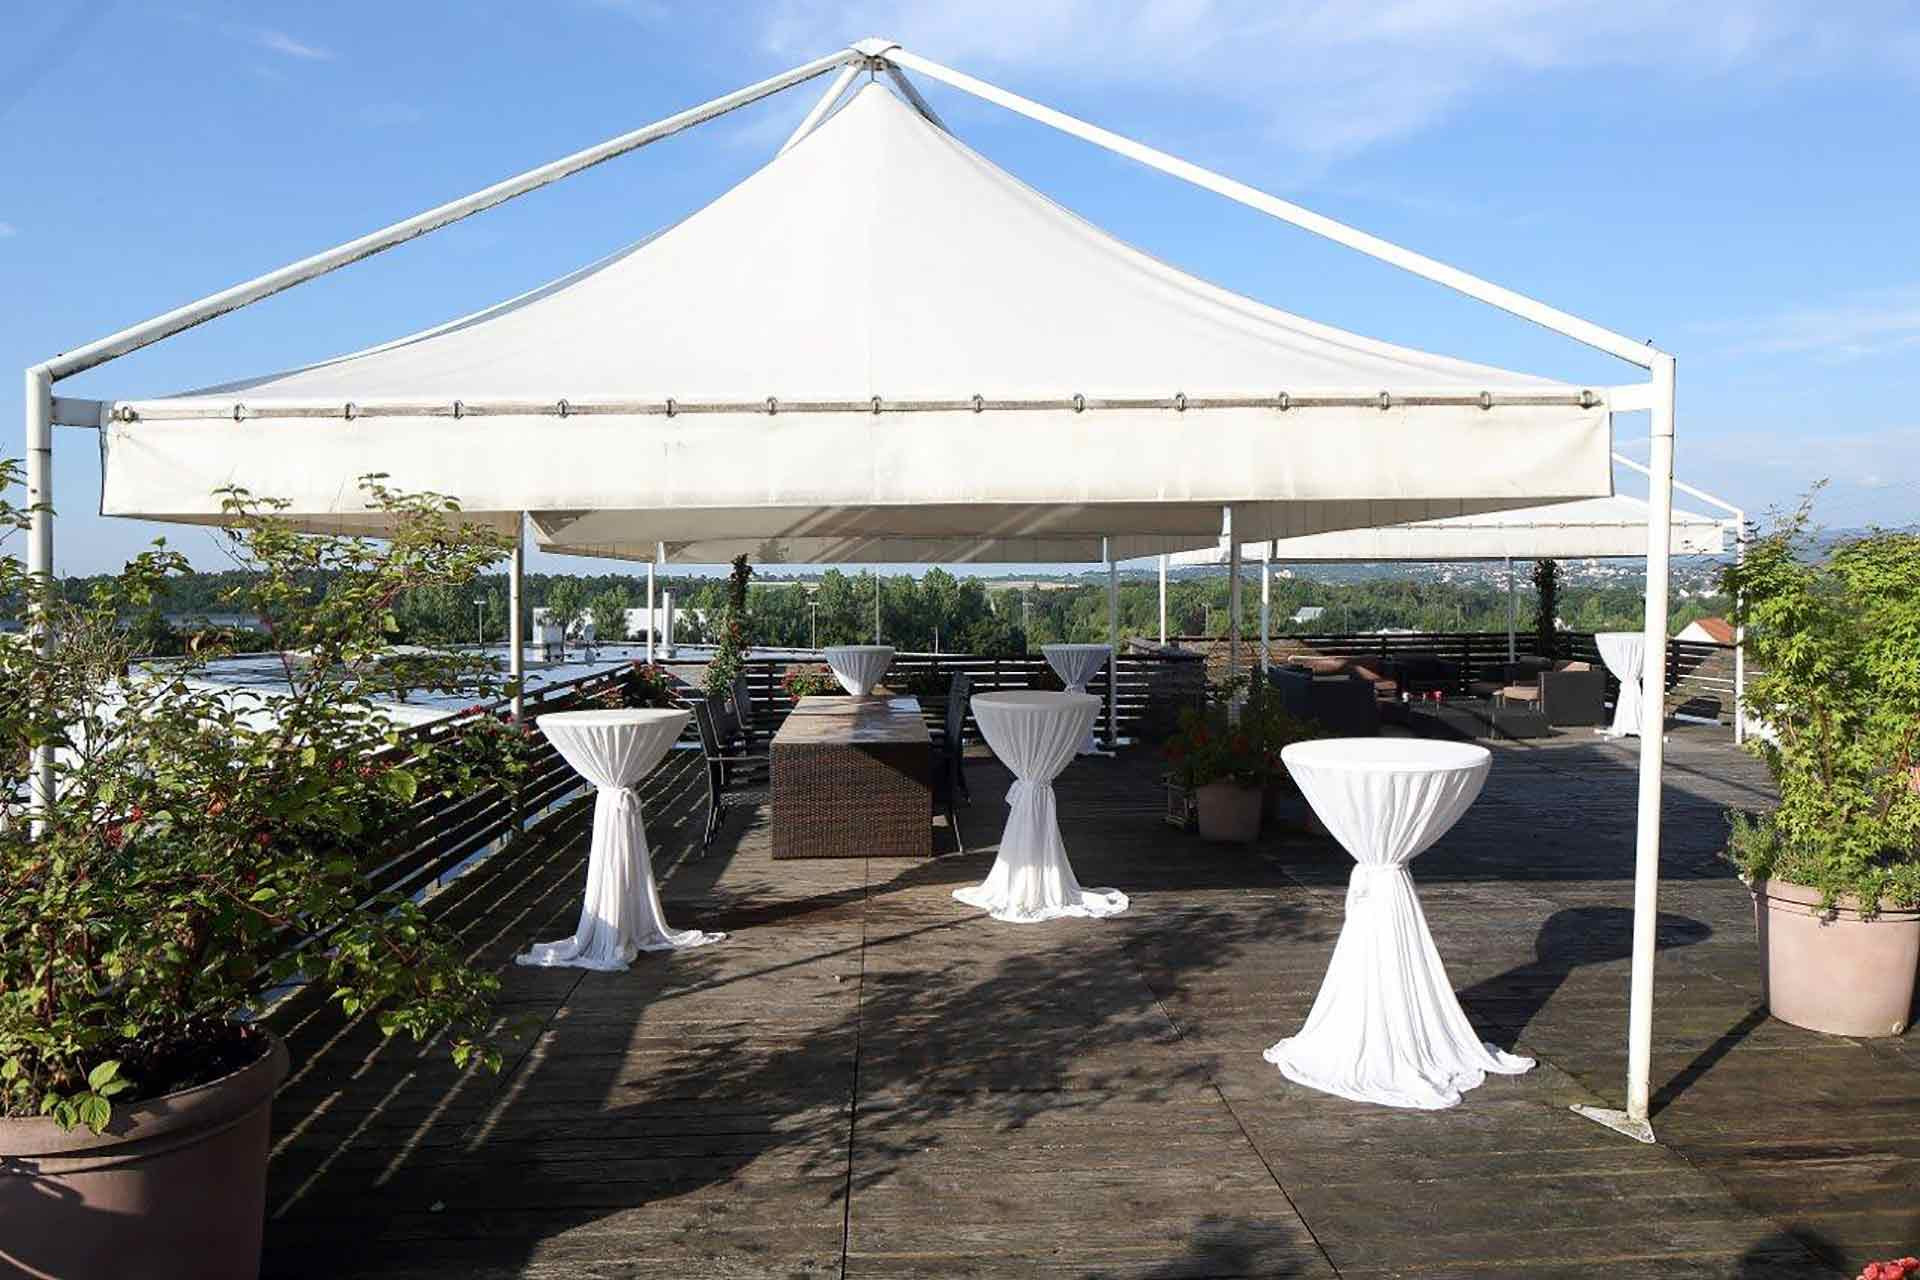 Eventlocation Reutlingen Dachterrasse